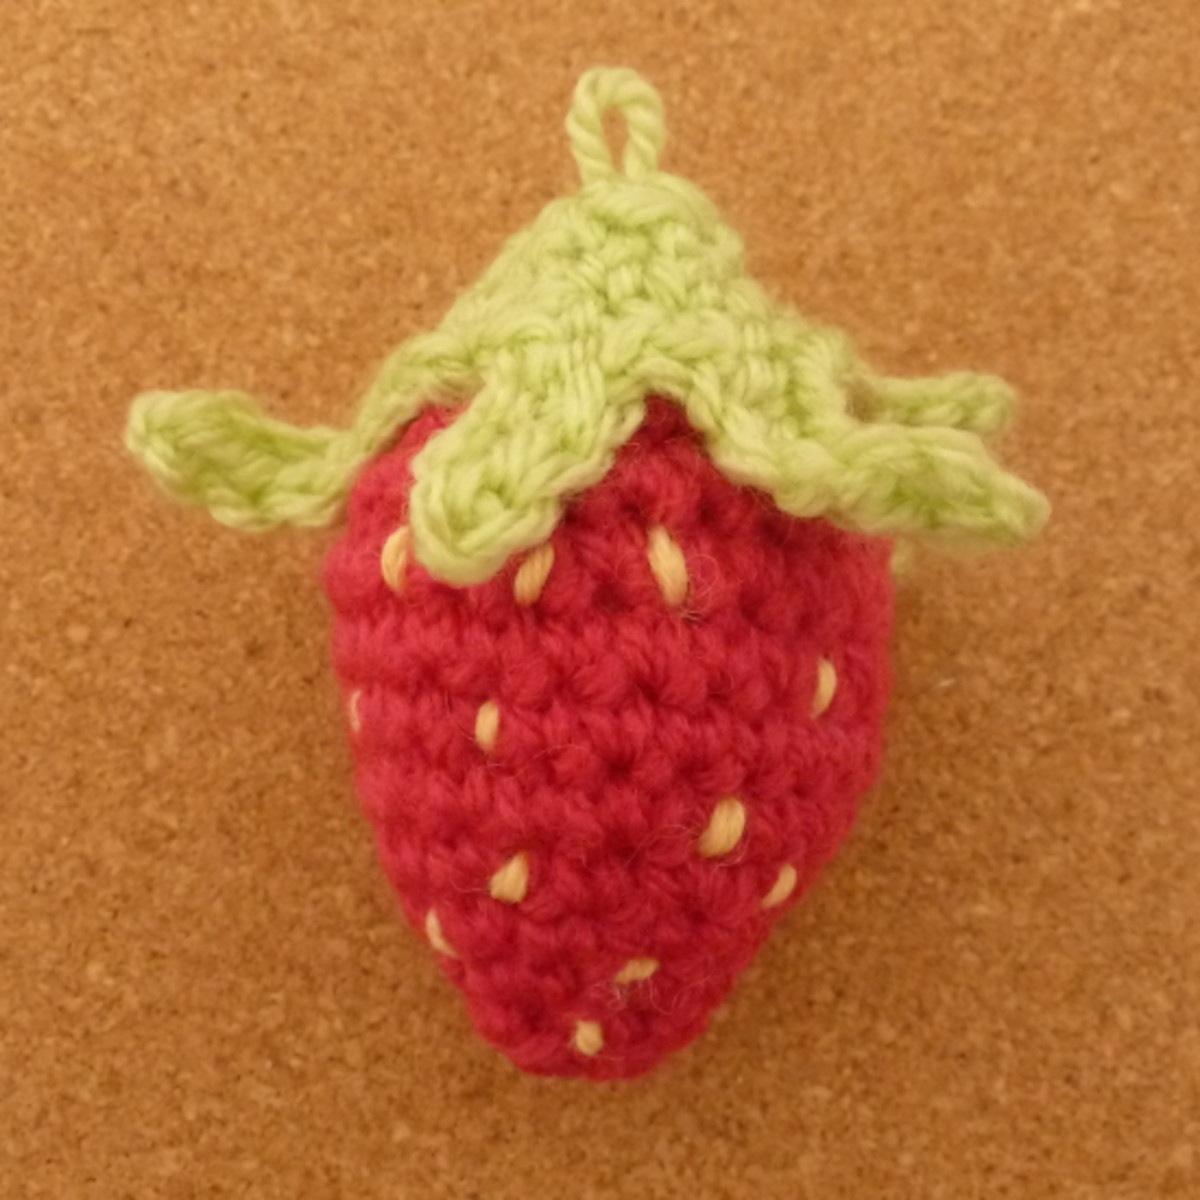 Making a yarn loop to hang the finished crochet strawberry piece on to a garland.